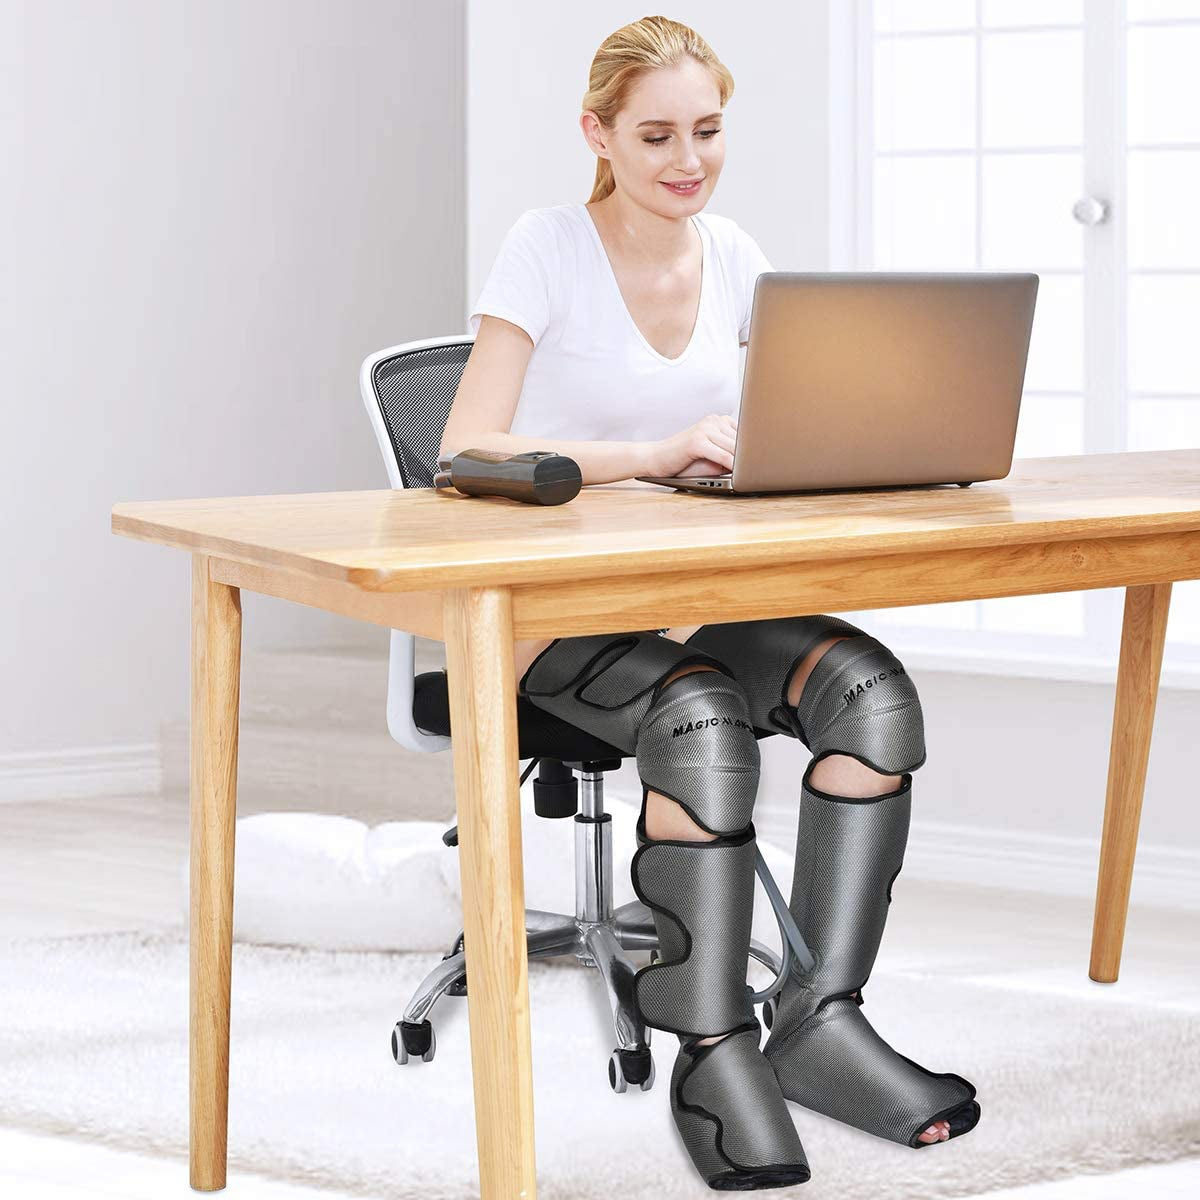 Woman sitting at desk with giant leg massagers on